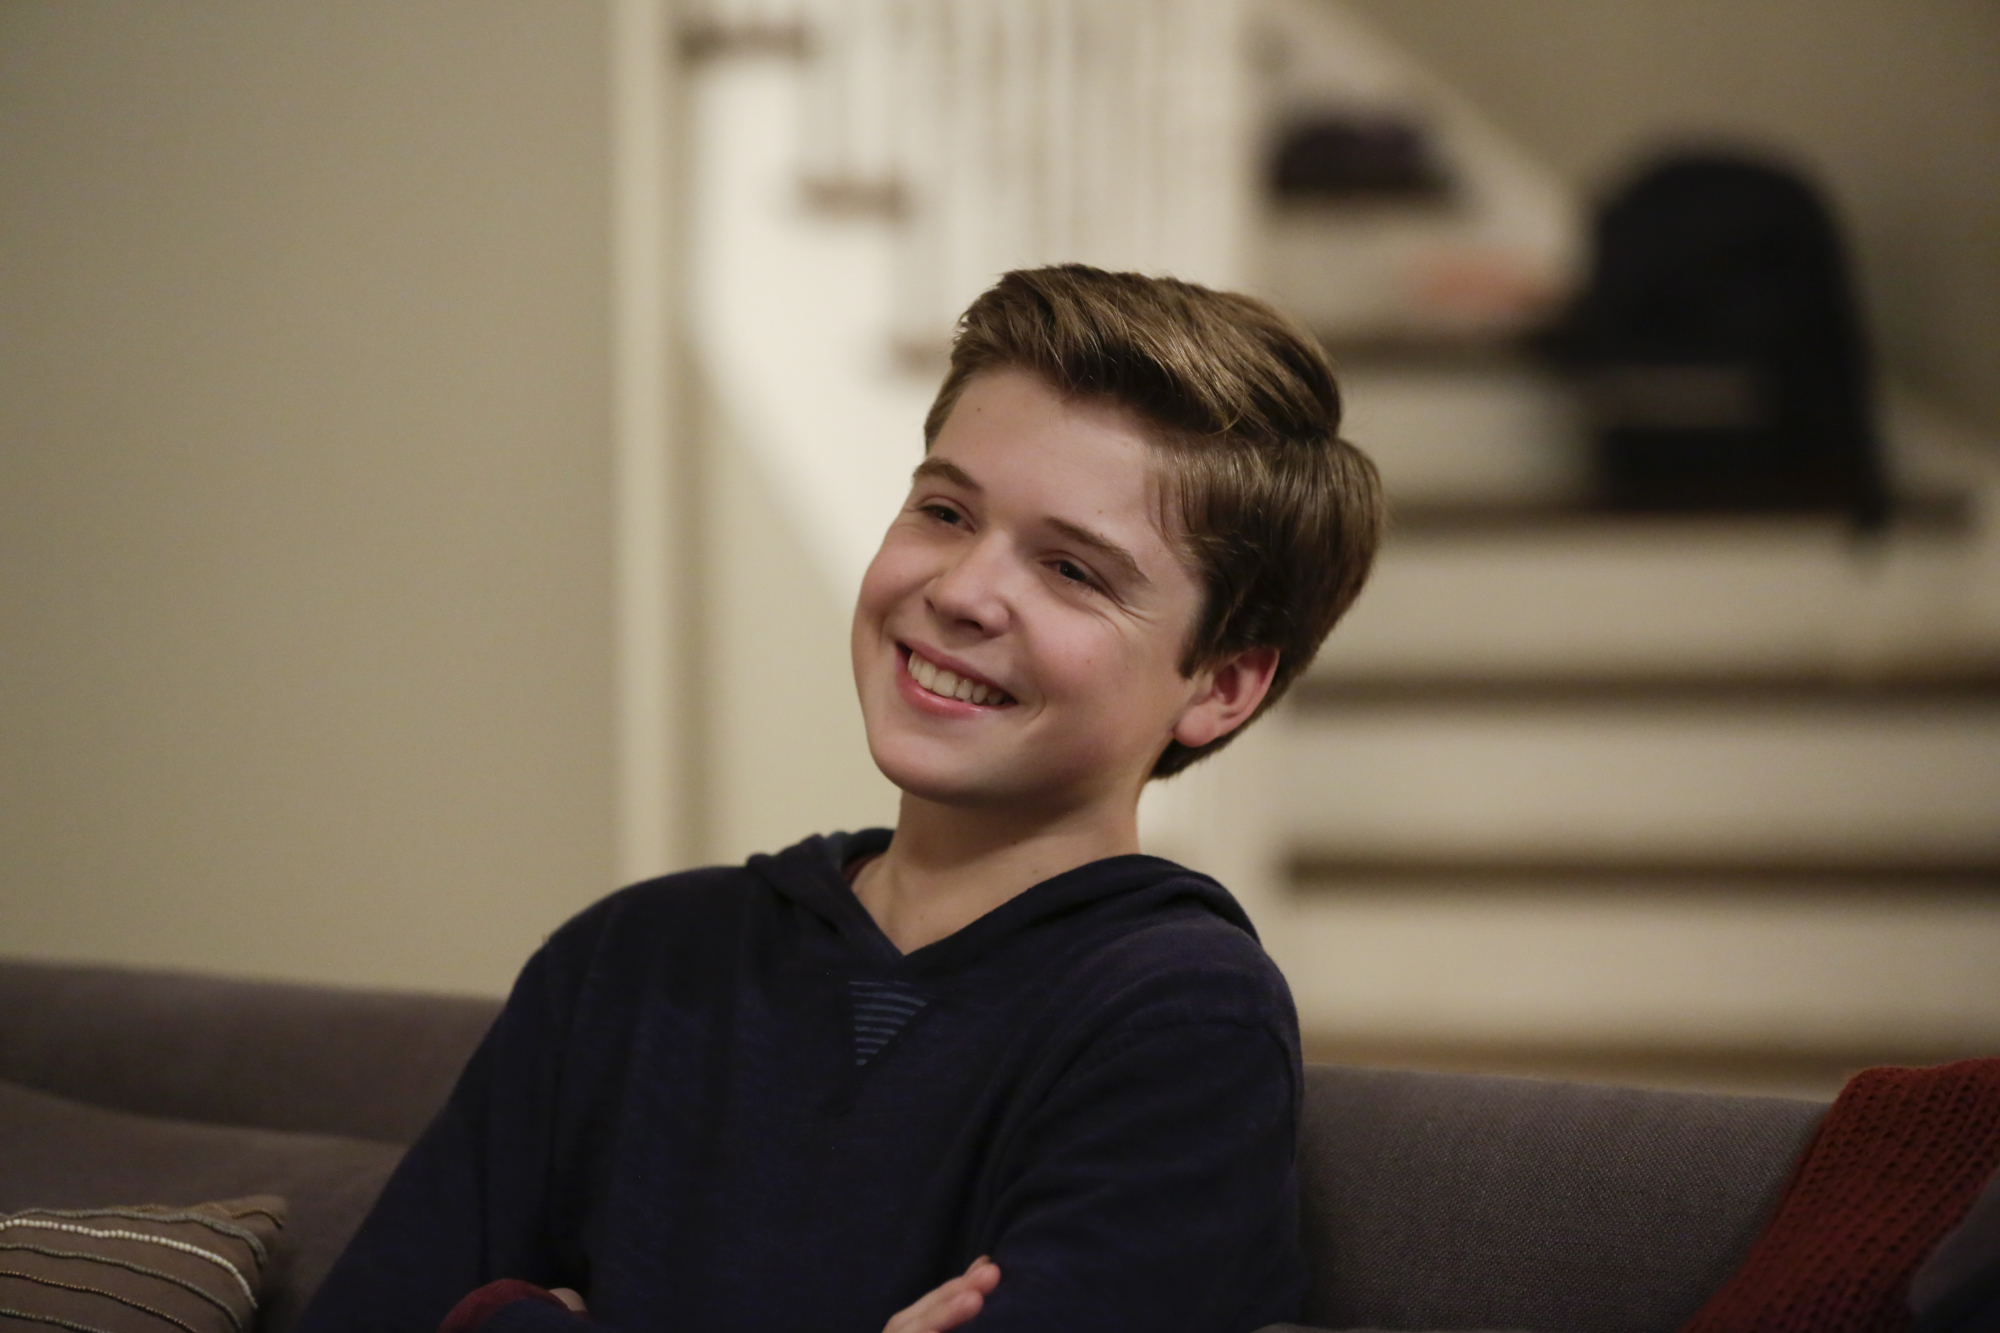 10. Evan Roe was discovered by a Hollywood agent at the age of 12.